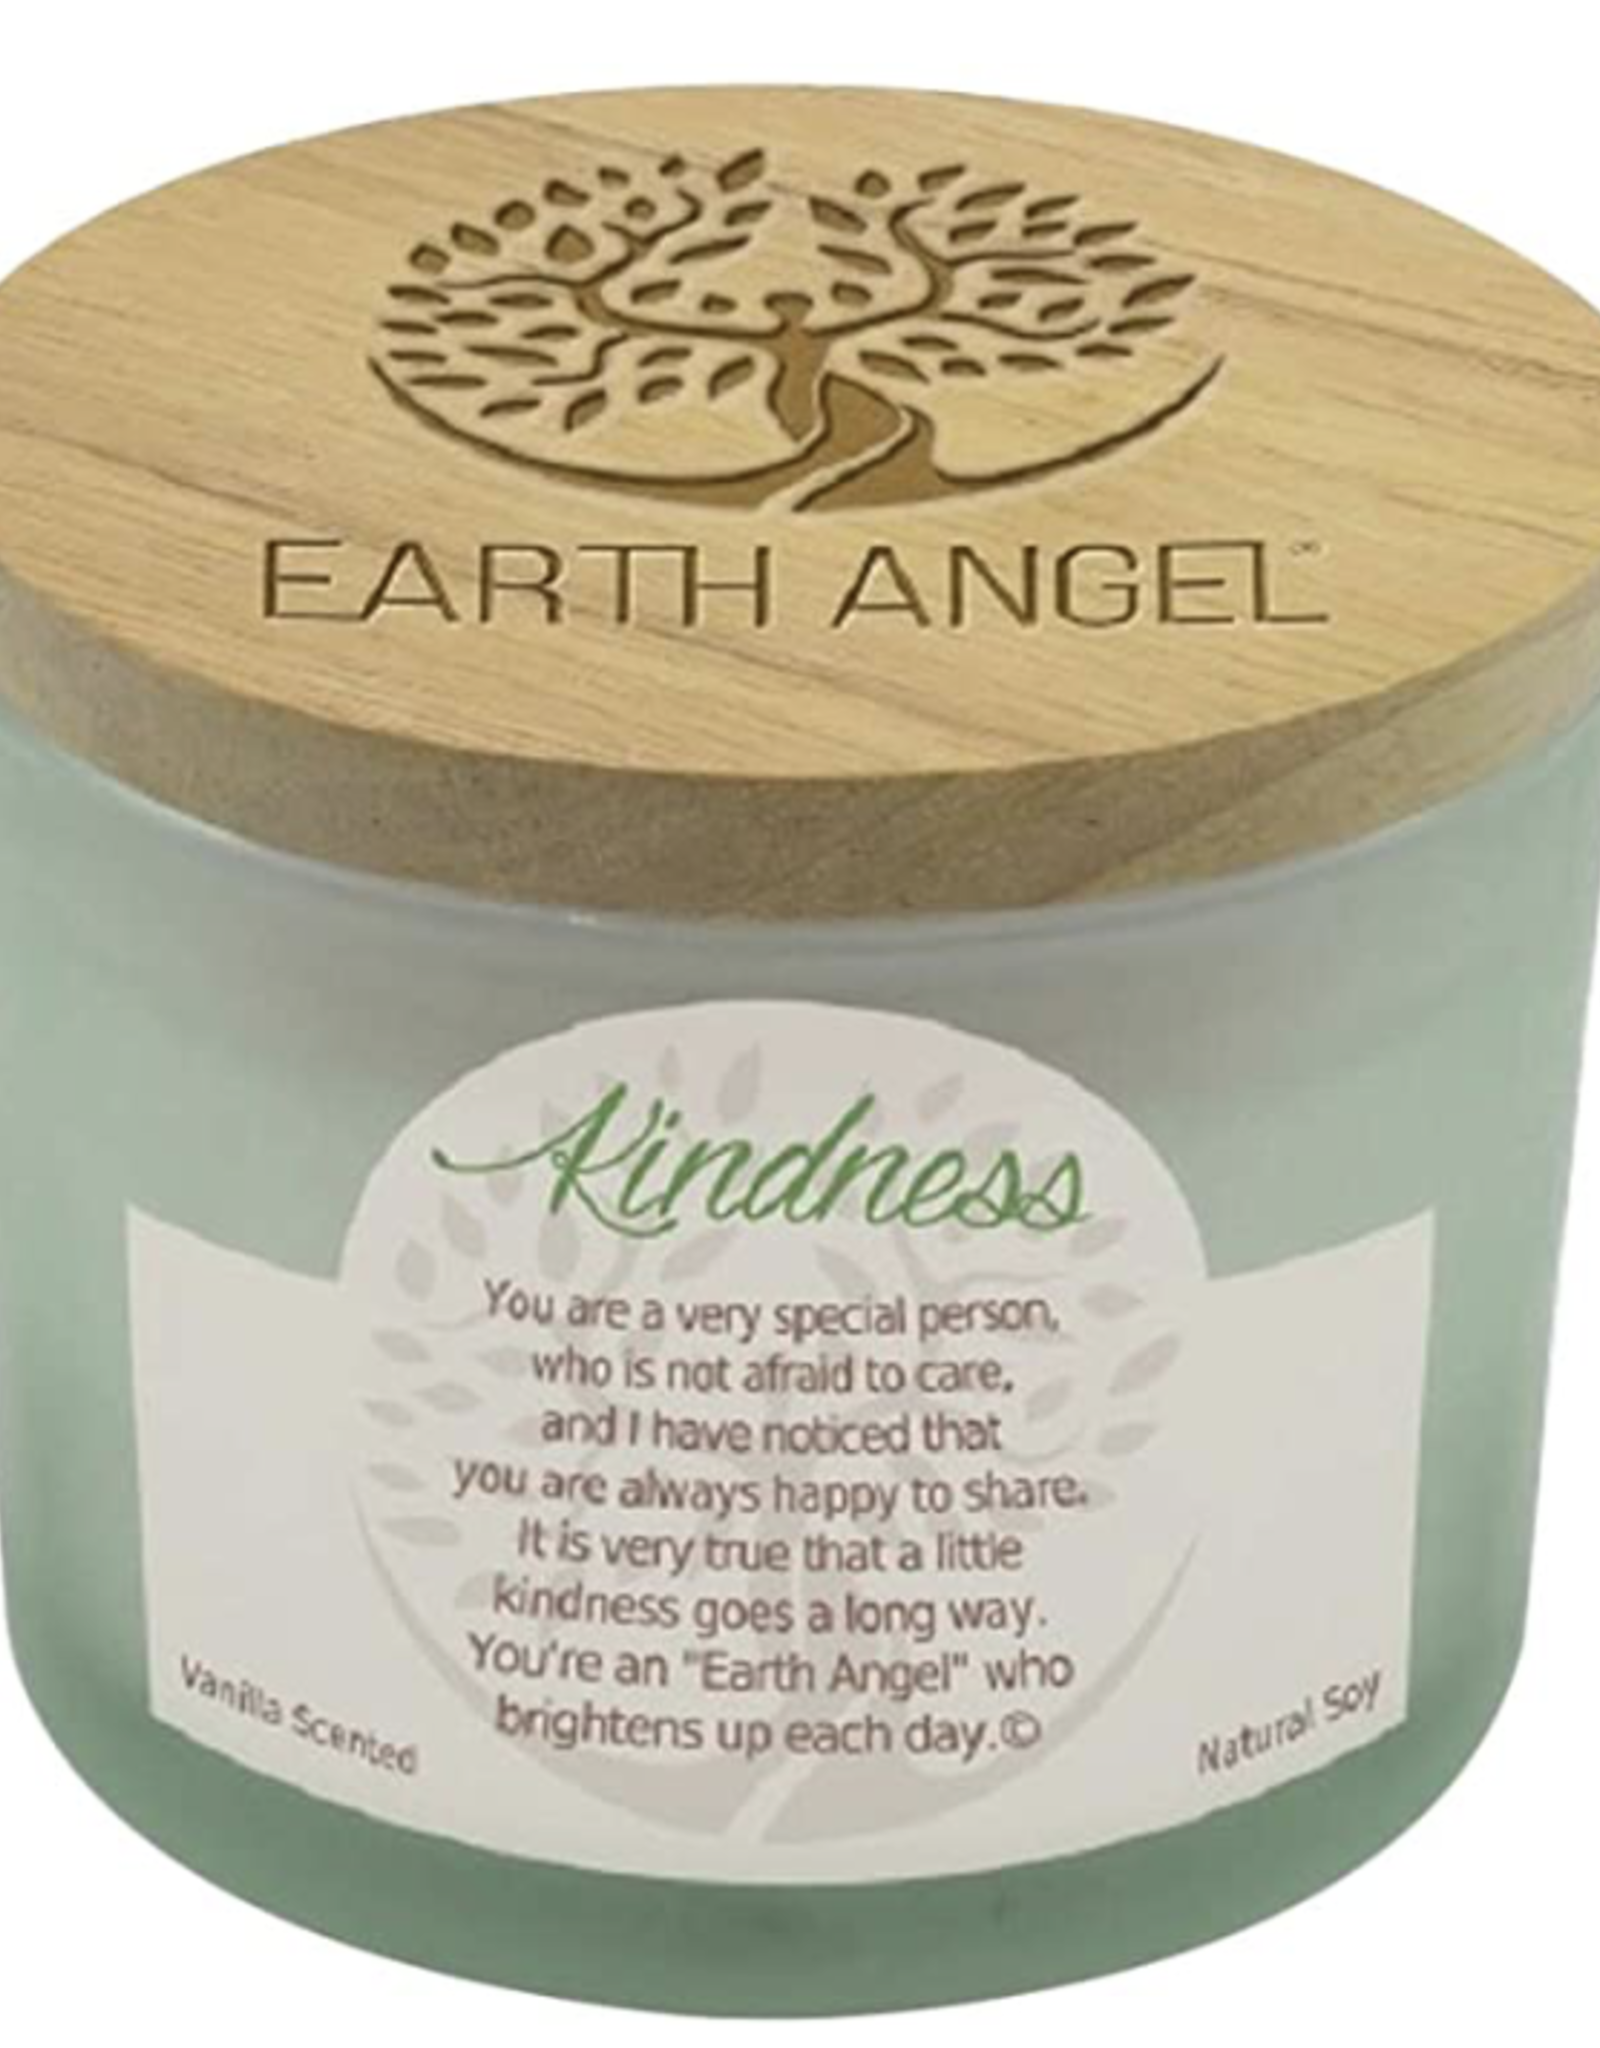 EARTH ANGEL Earth Angel Candle - Kindness